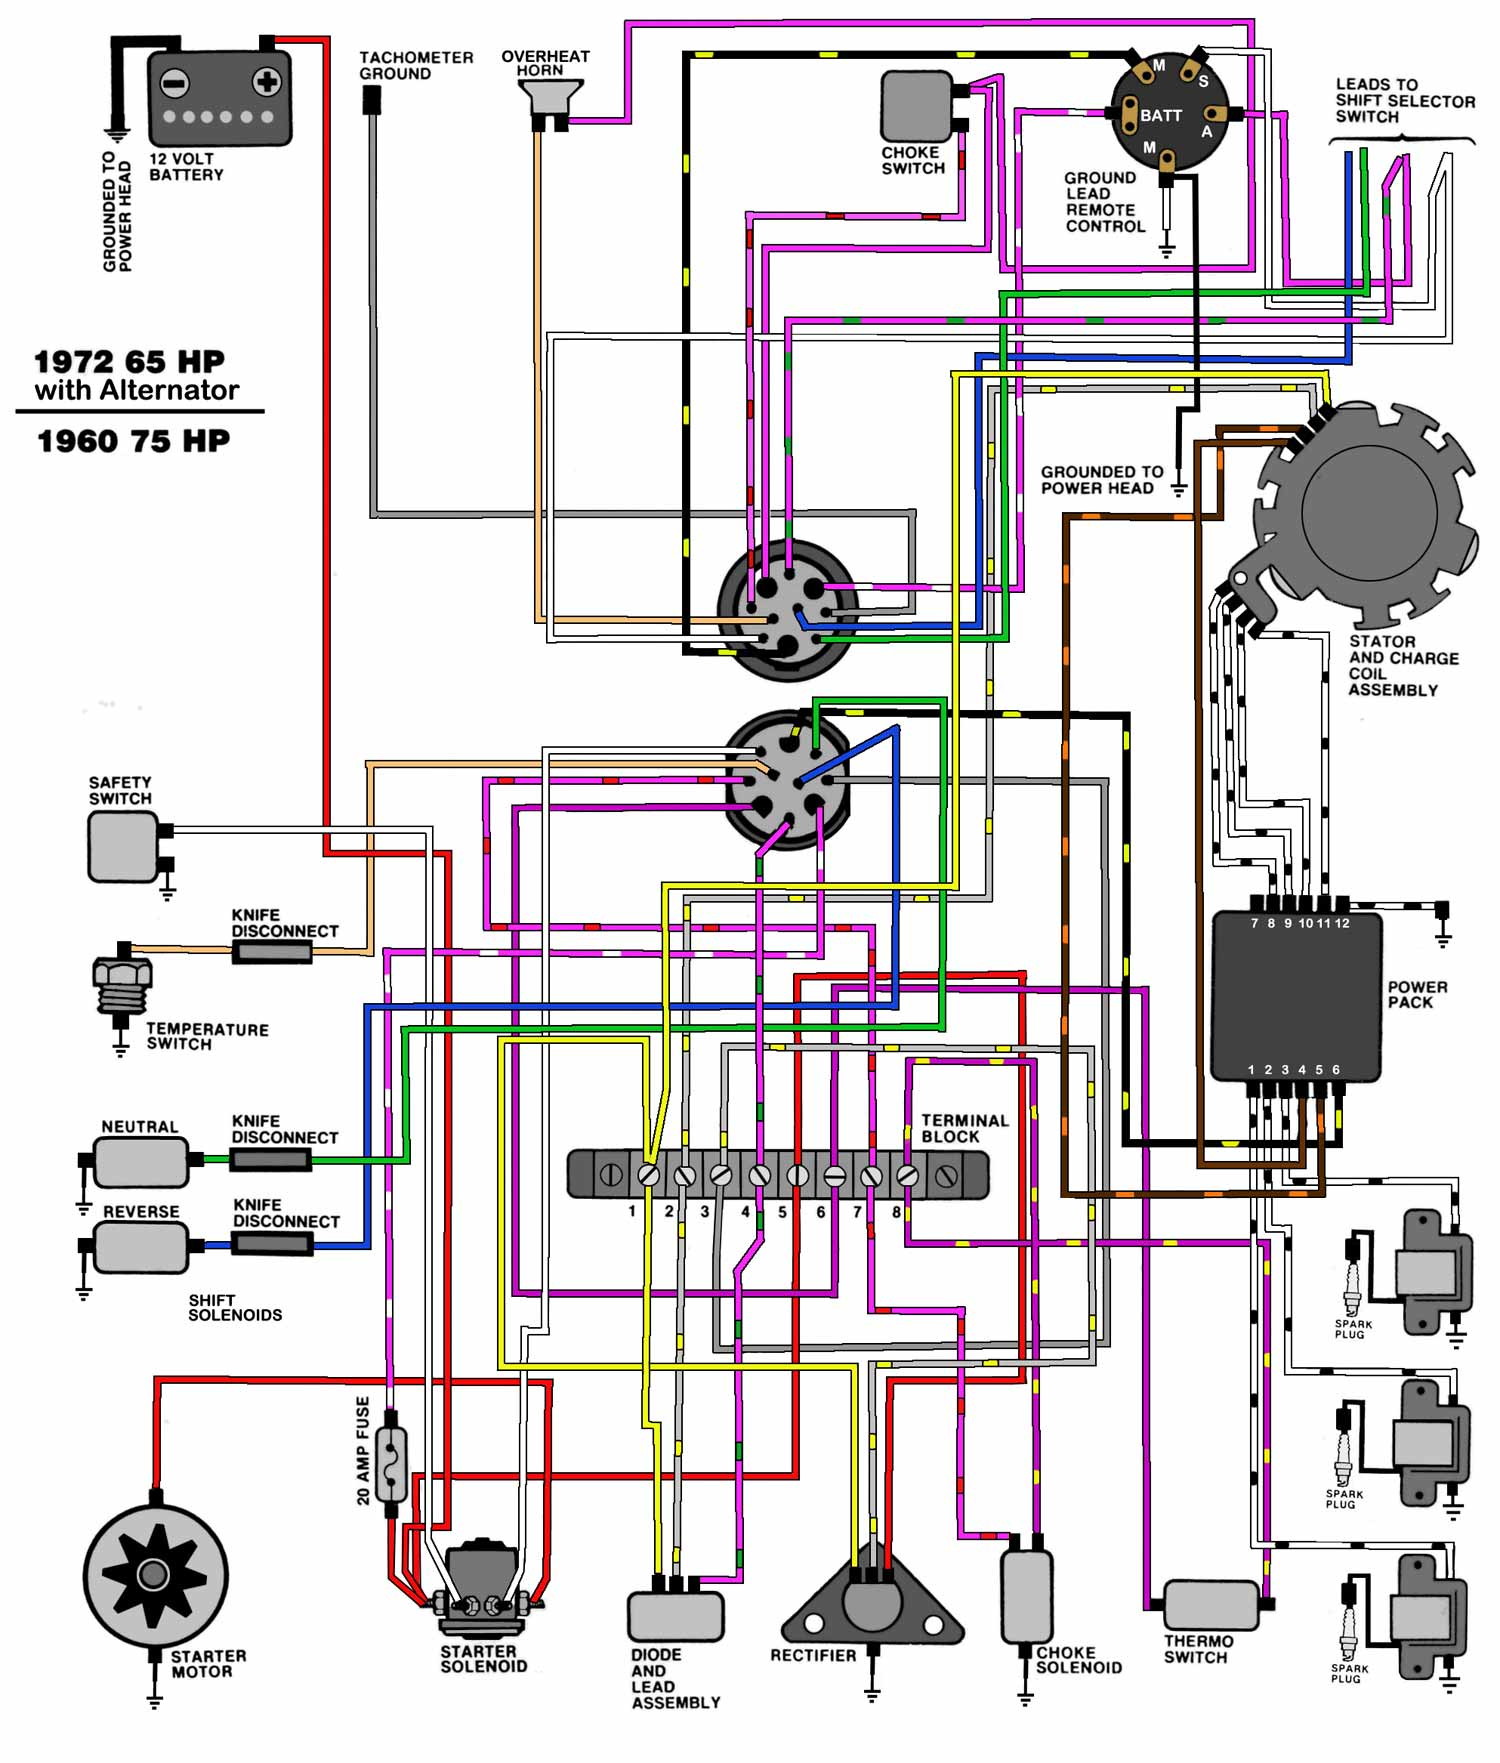 1972 Ford Alternator Diagram Real Wiring 2g Evinrude Johnson Outboard Diagrams Mastertech F100 1986 F 150